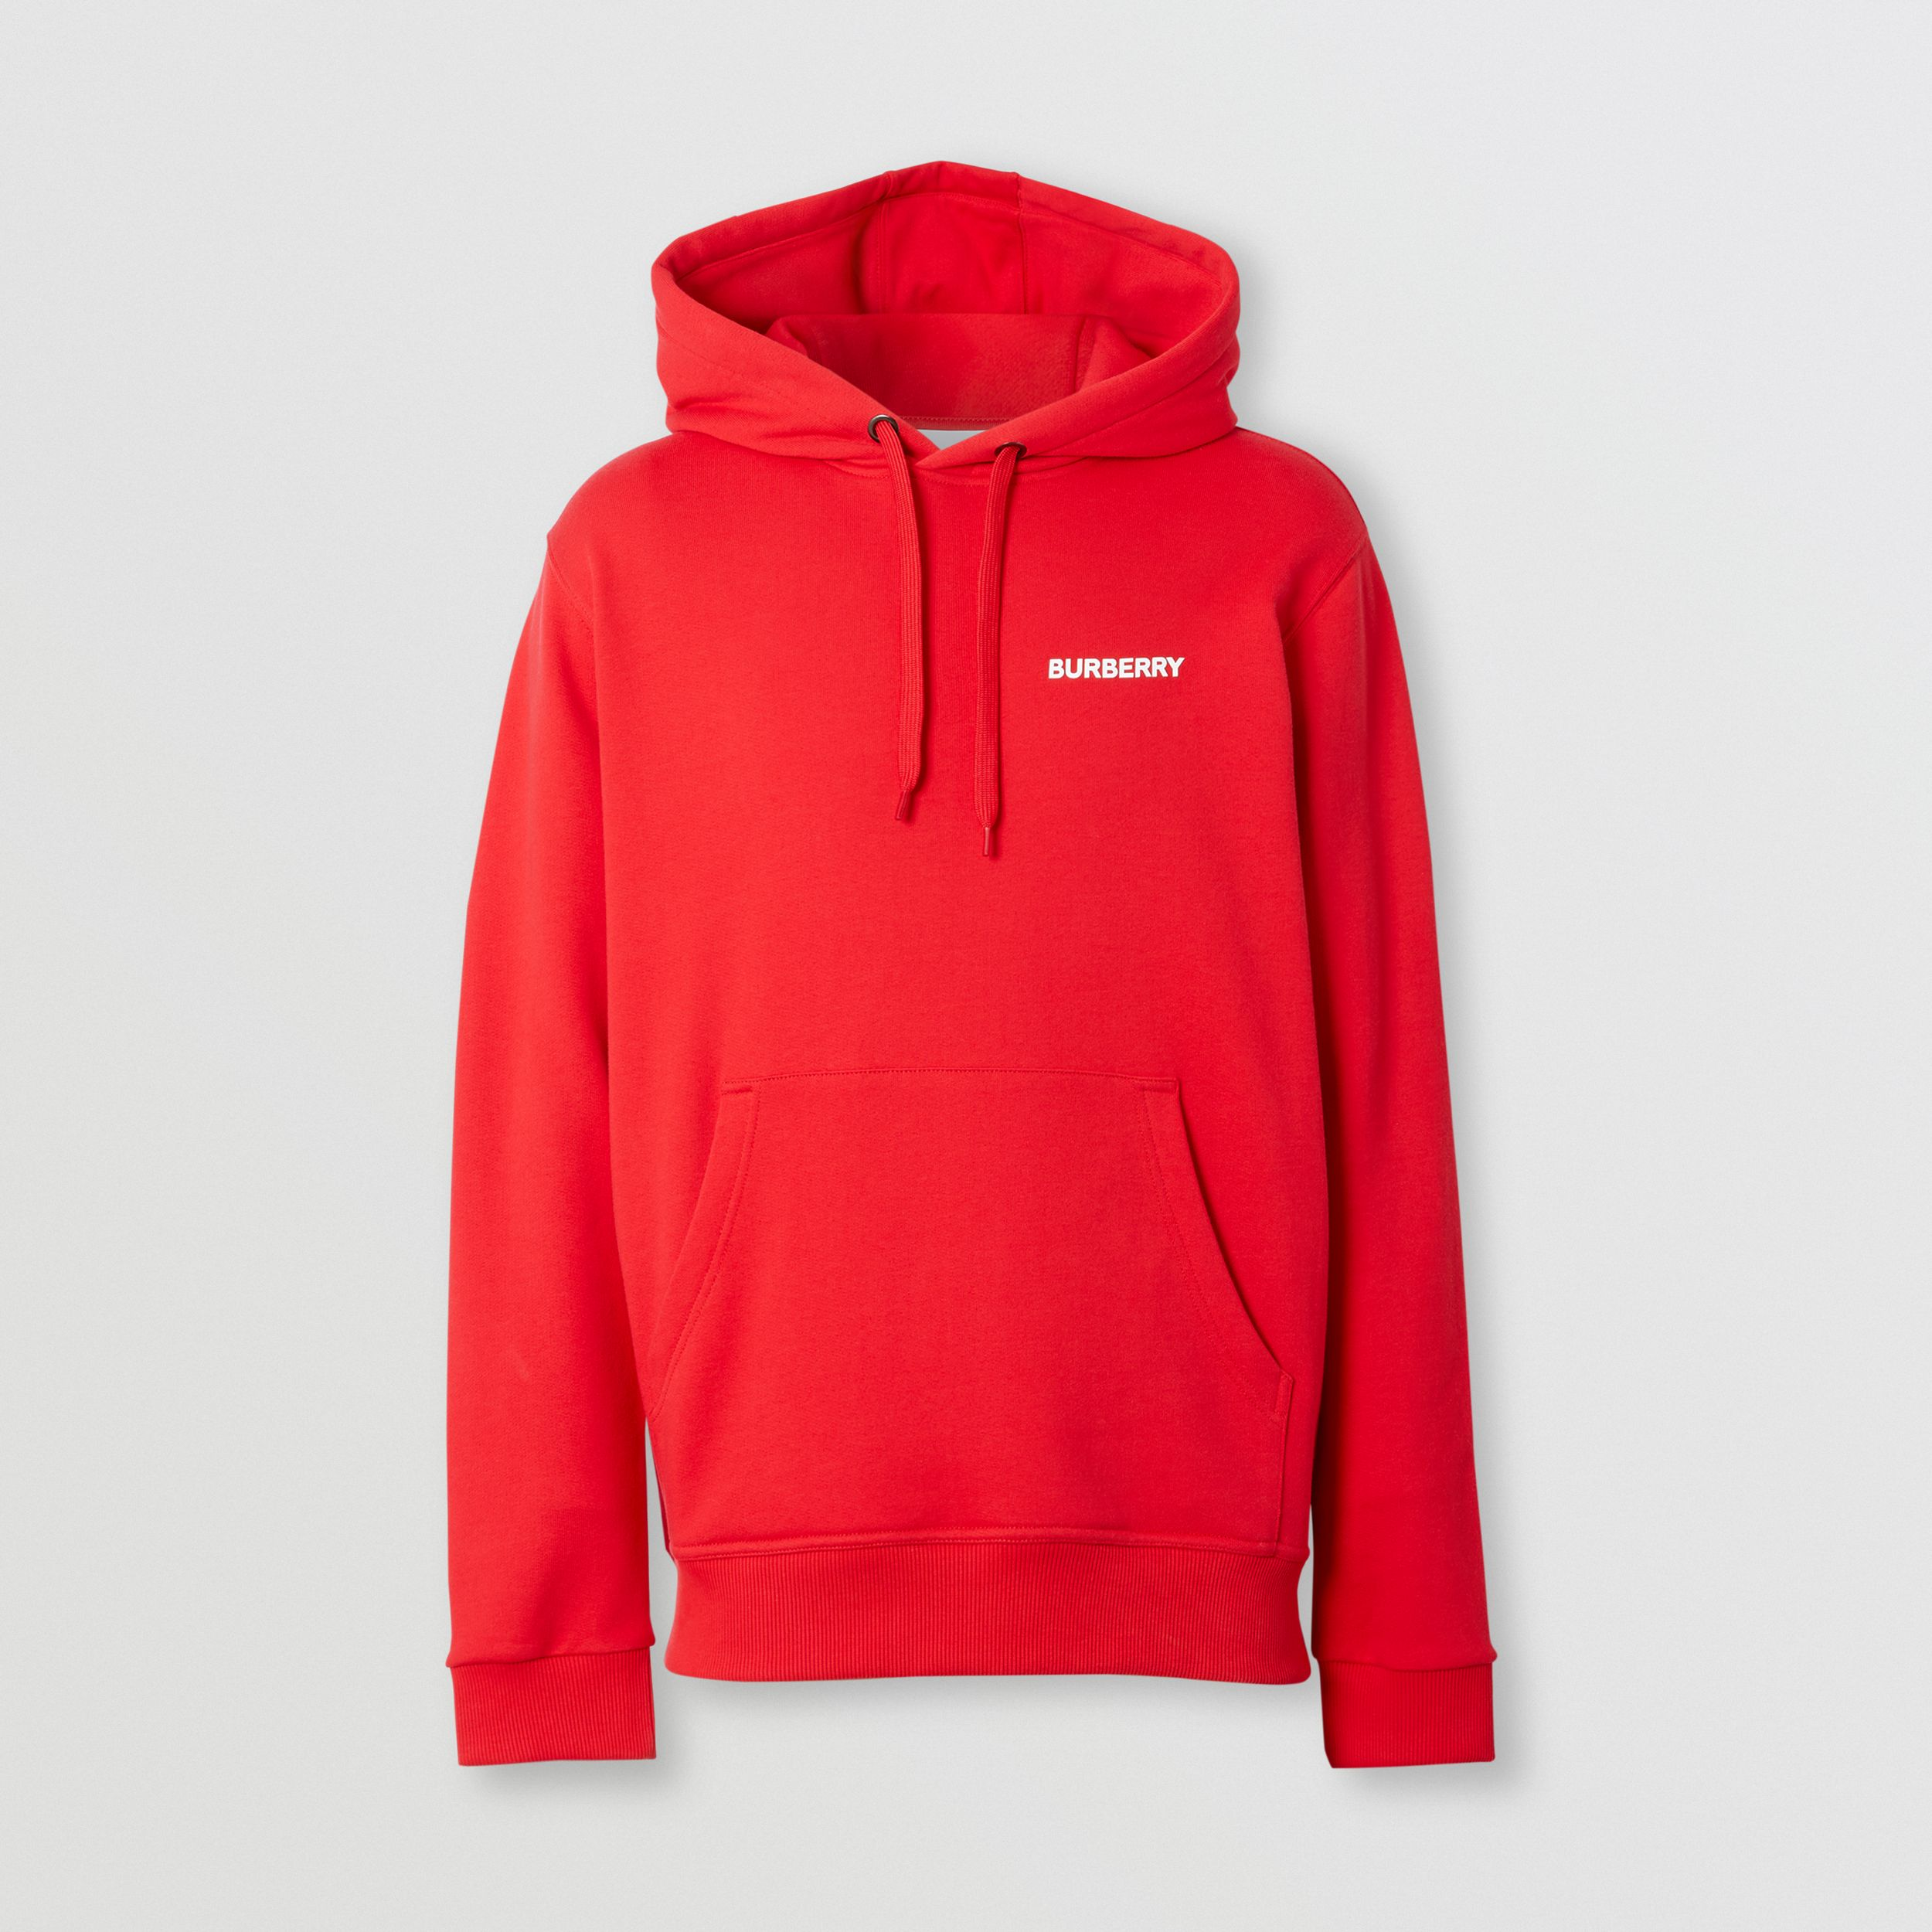 Montage Print Cotton Hoodie – Unisex in Bright Red | Burberry Australia - 1